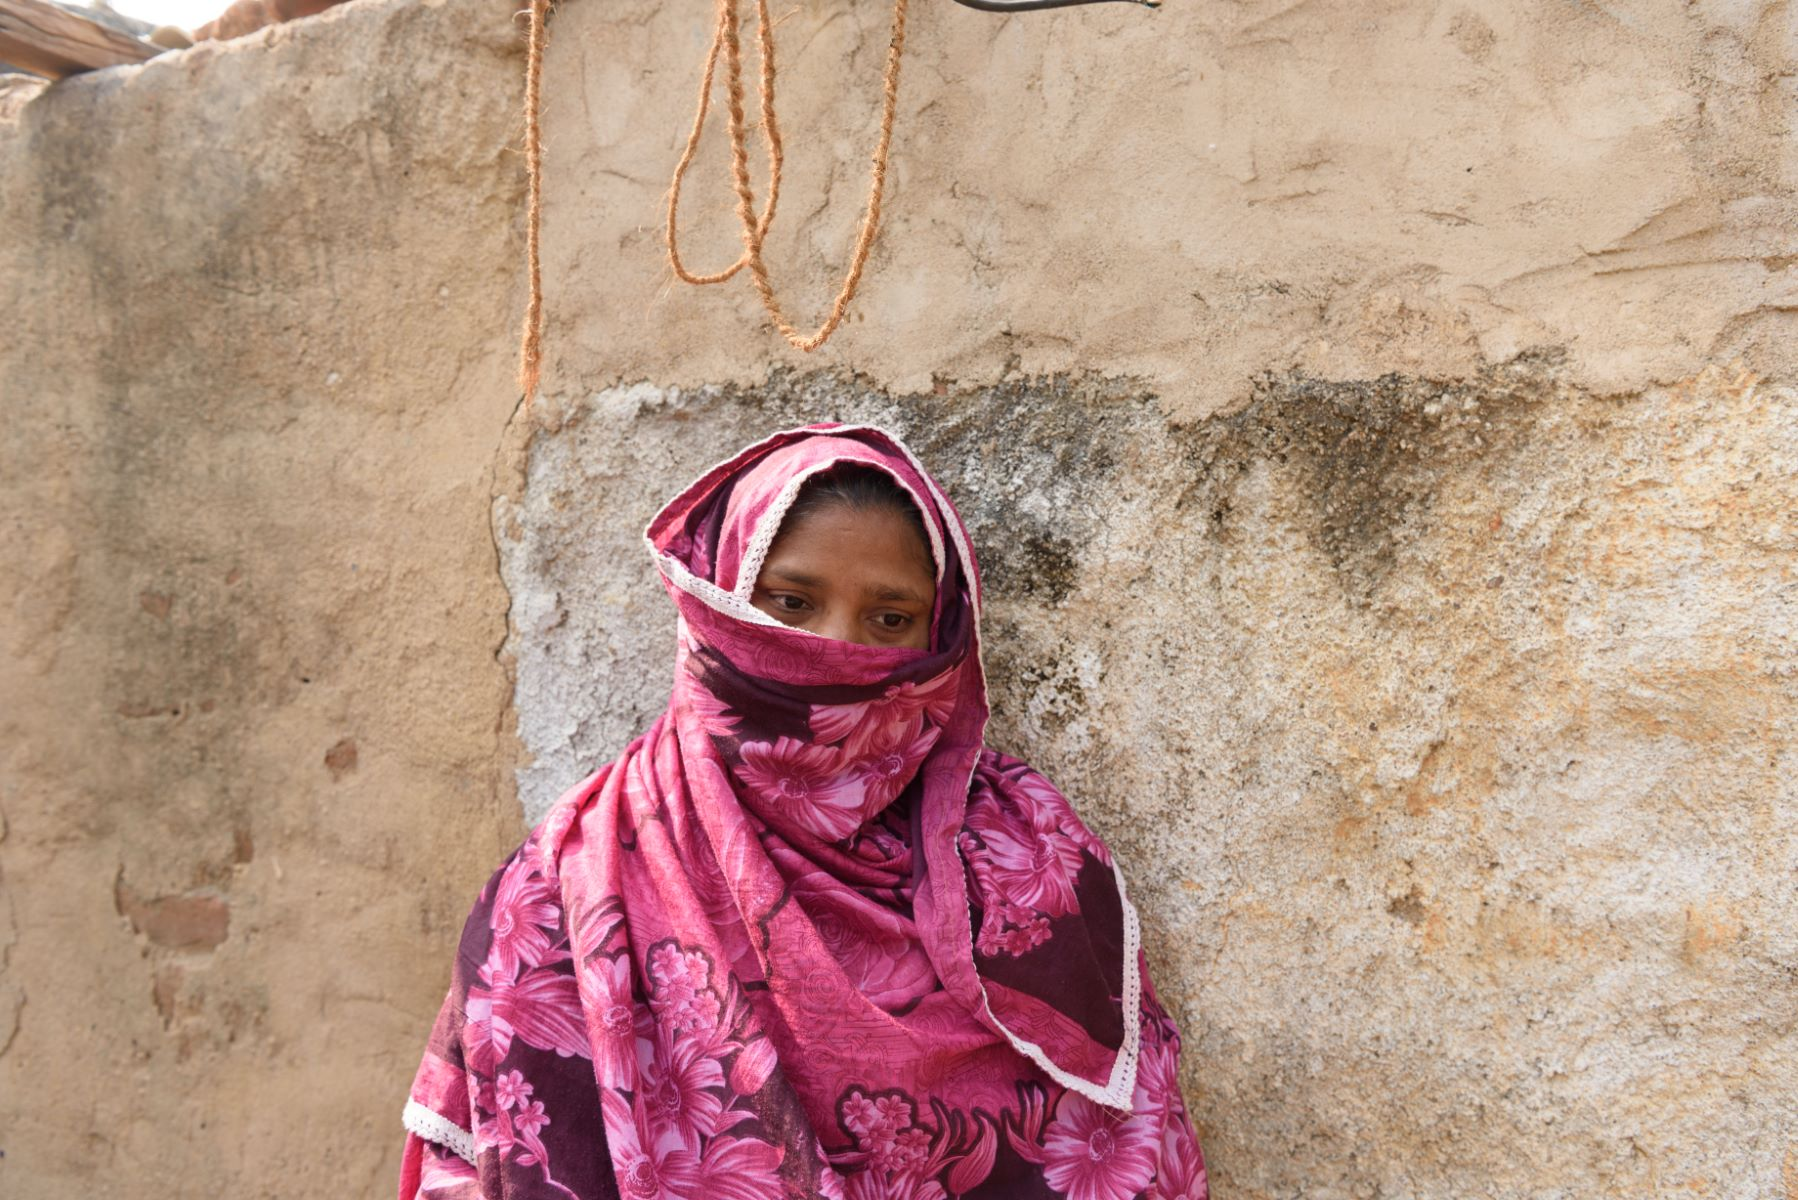 In Doulatabad village, Fatima Begum will be aided by SDIF to rebuild her rain-affected house